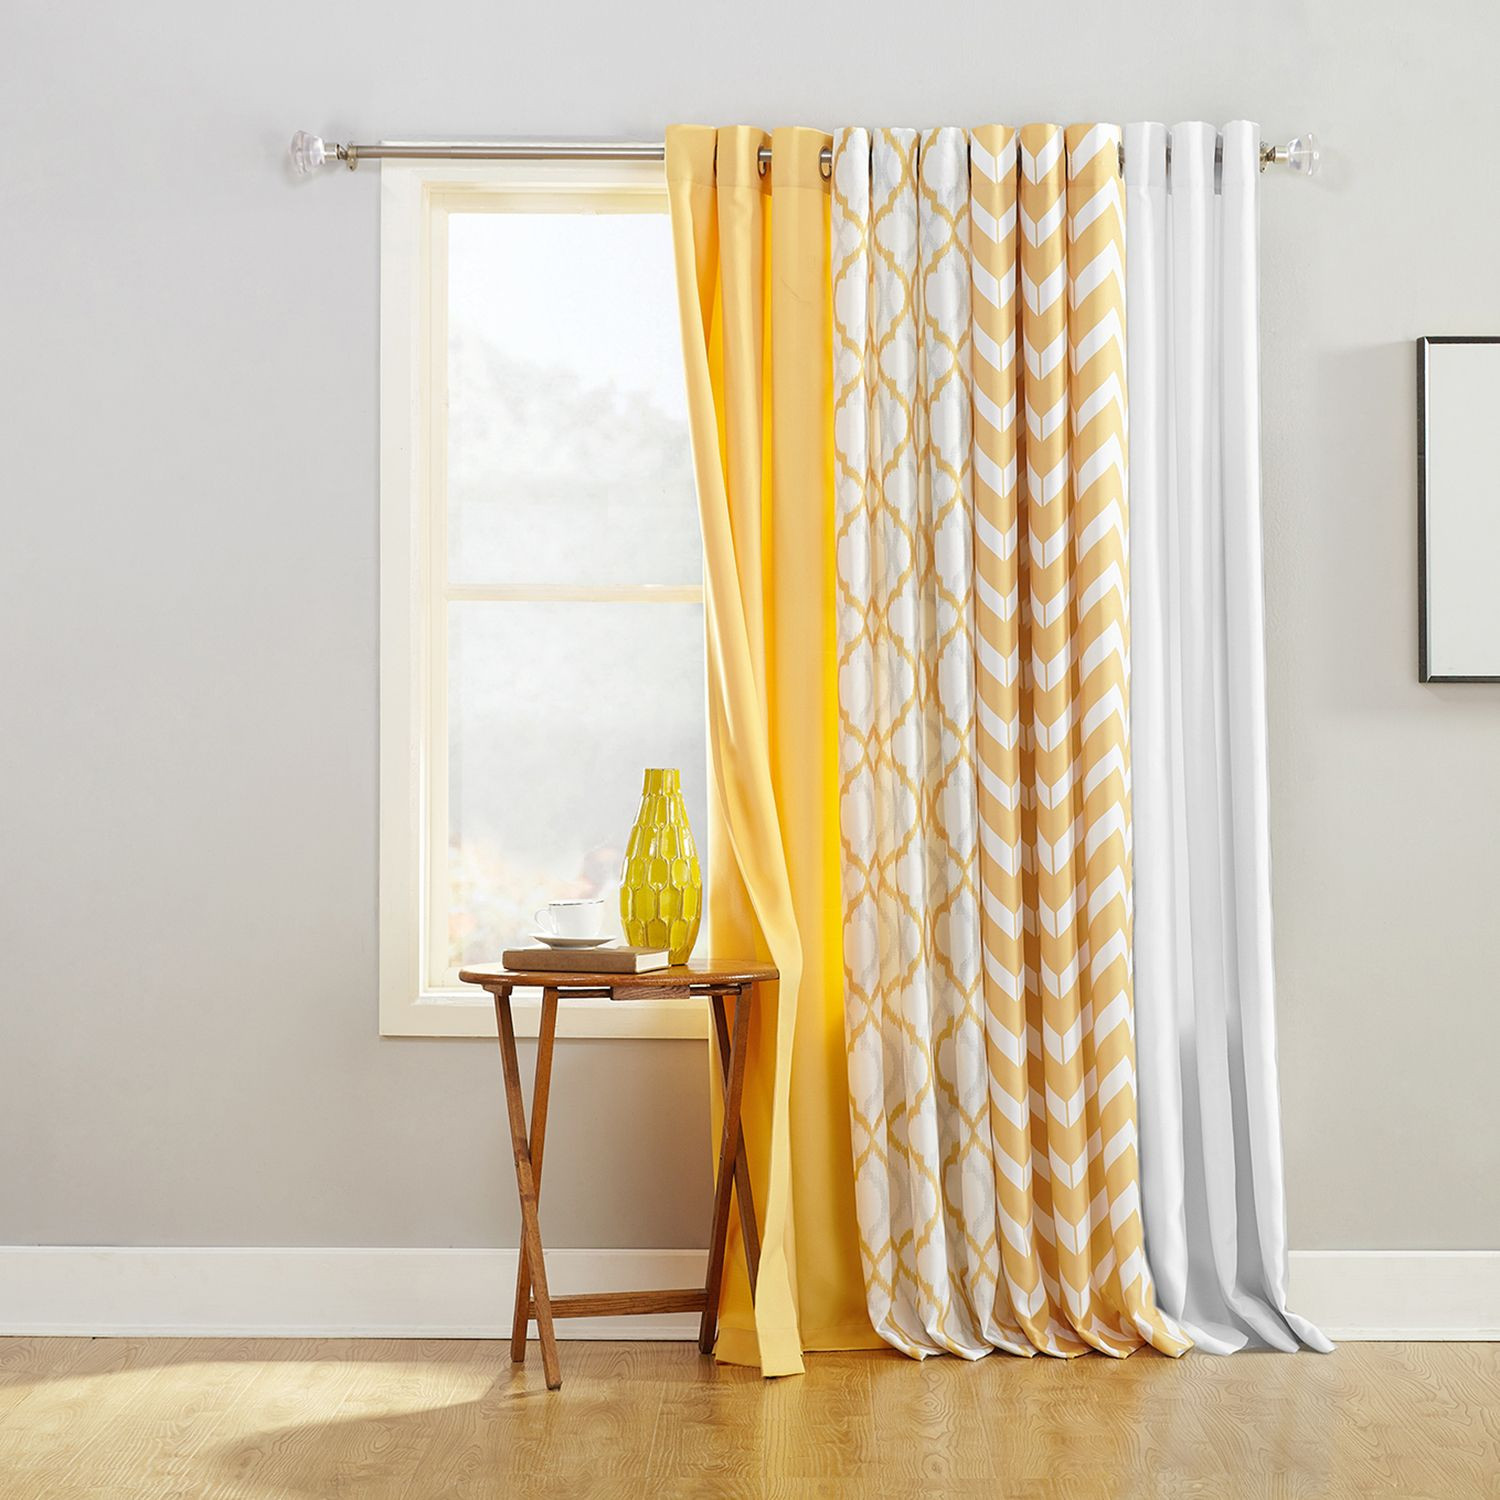 Charming The Big One® Solid White Window Treatments  Mustard Yellow Curtains